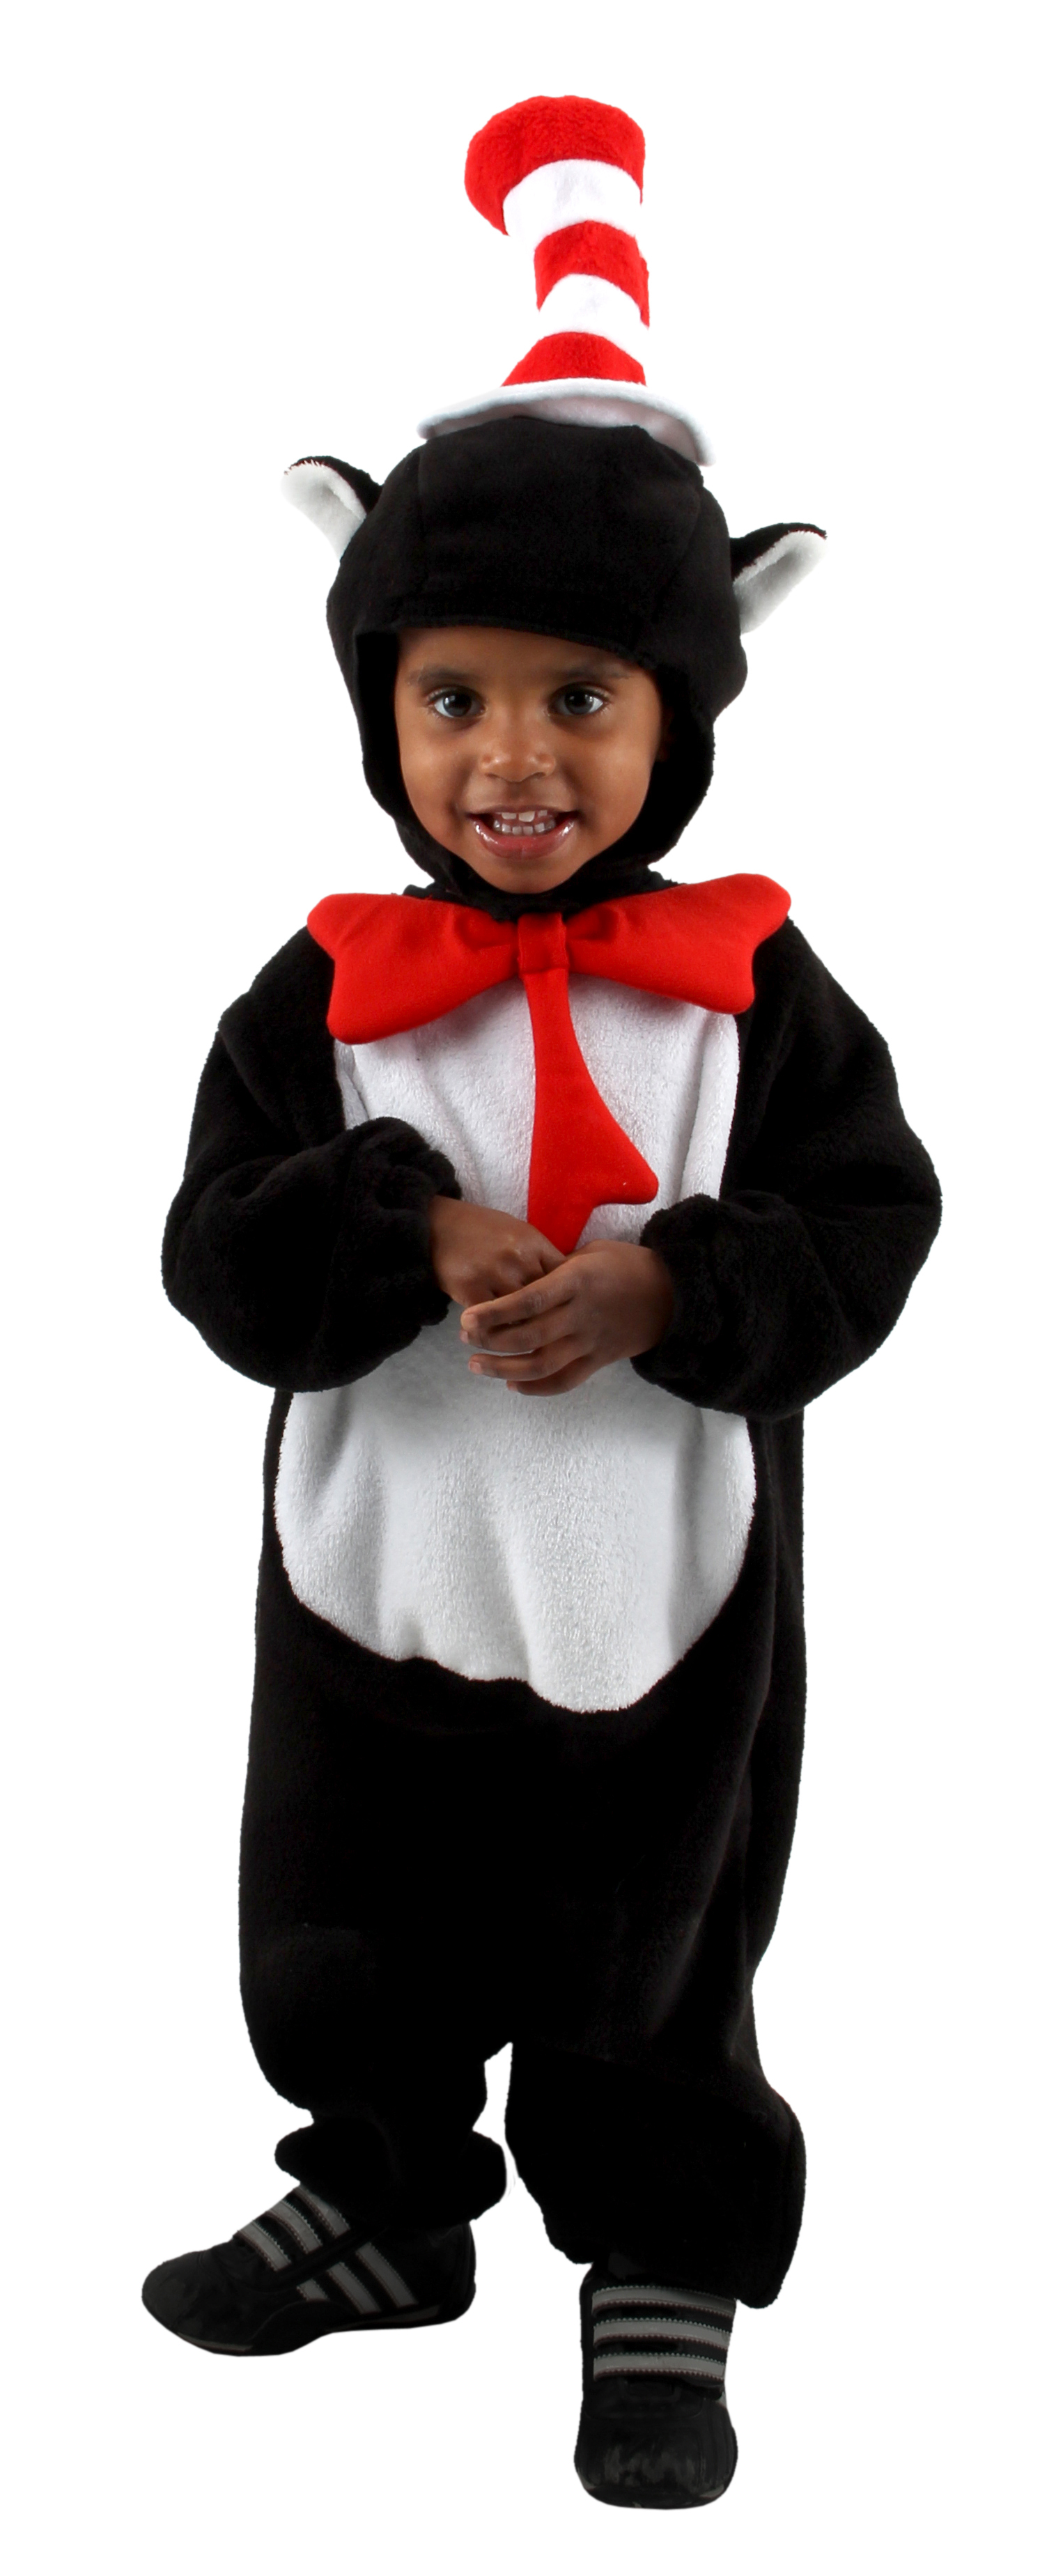 Dr. Seuss The Cat in the Hat – The Cat in the Hat Infant Costume